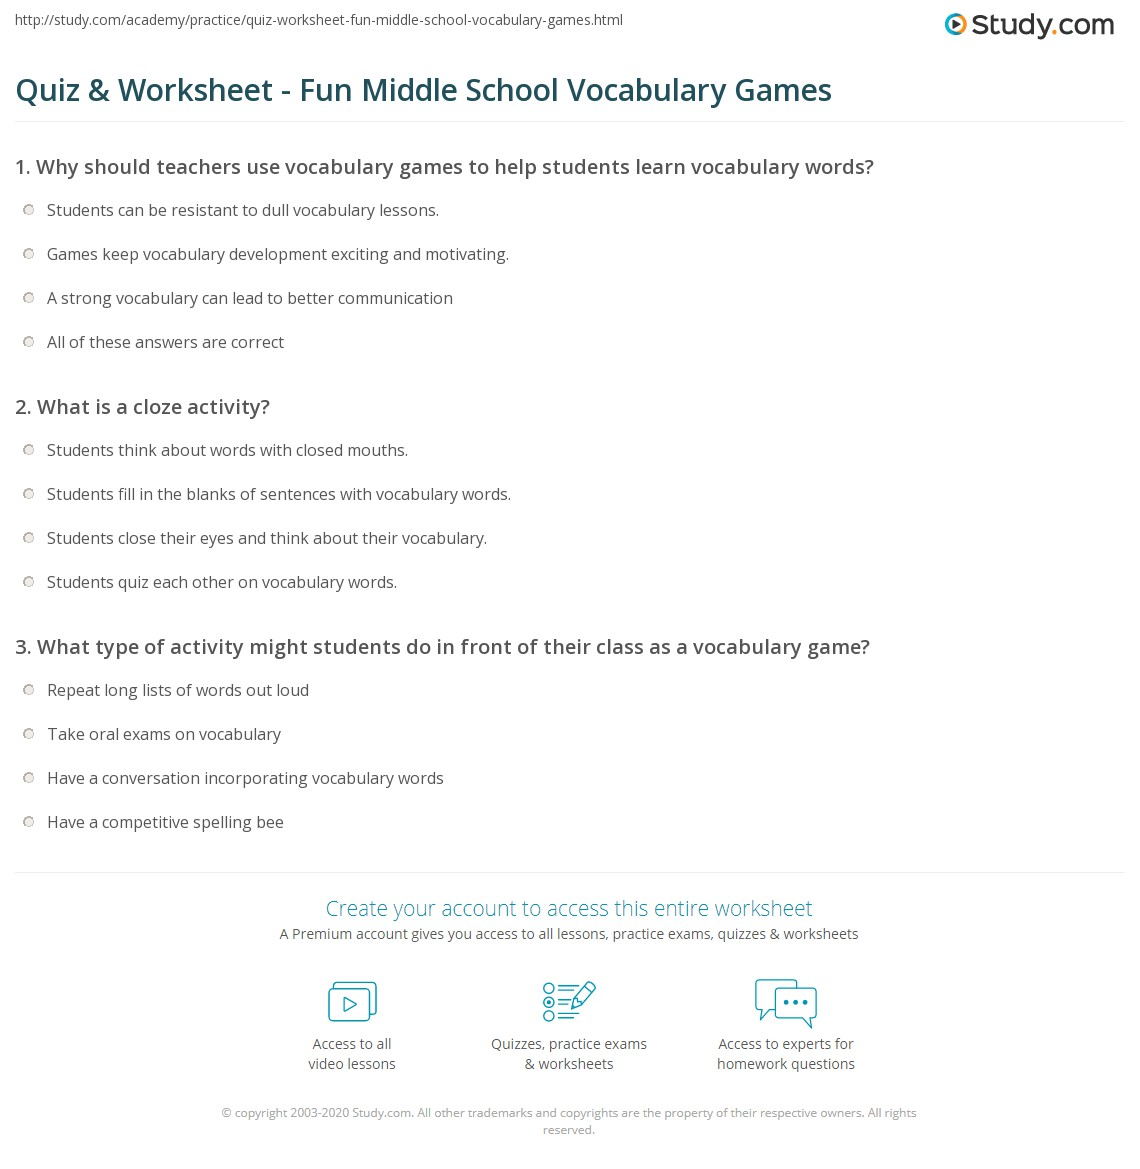 quiz worksheet fun middle school vocabulary games study com